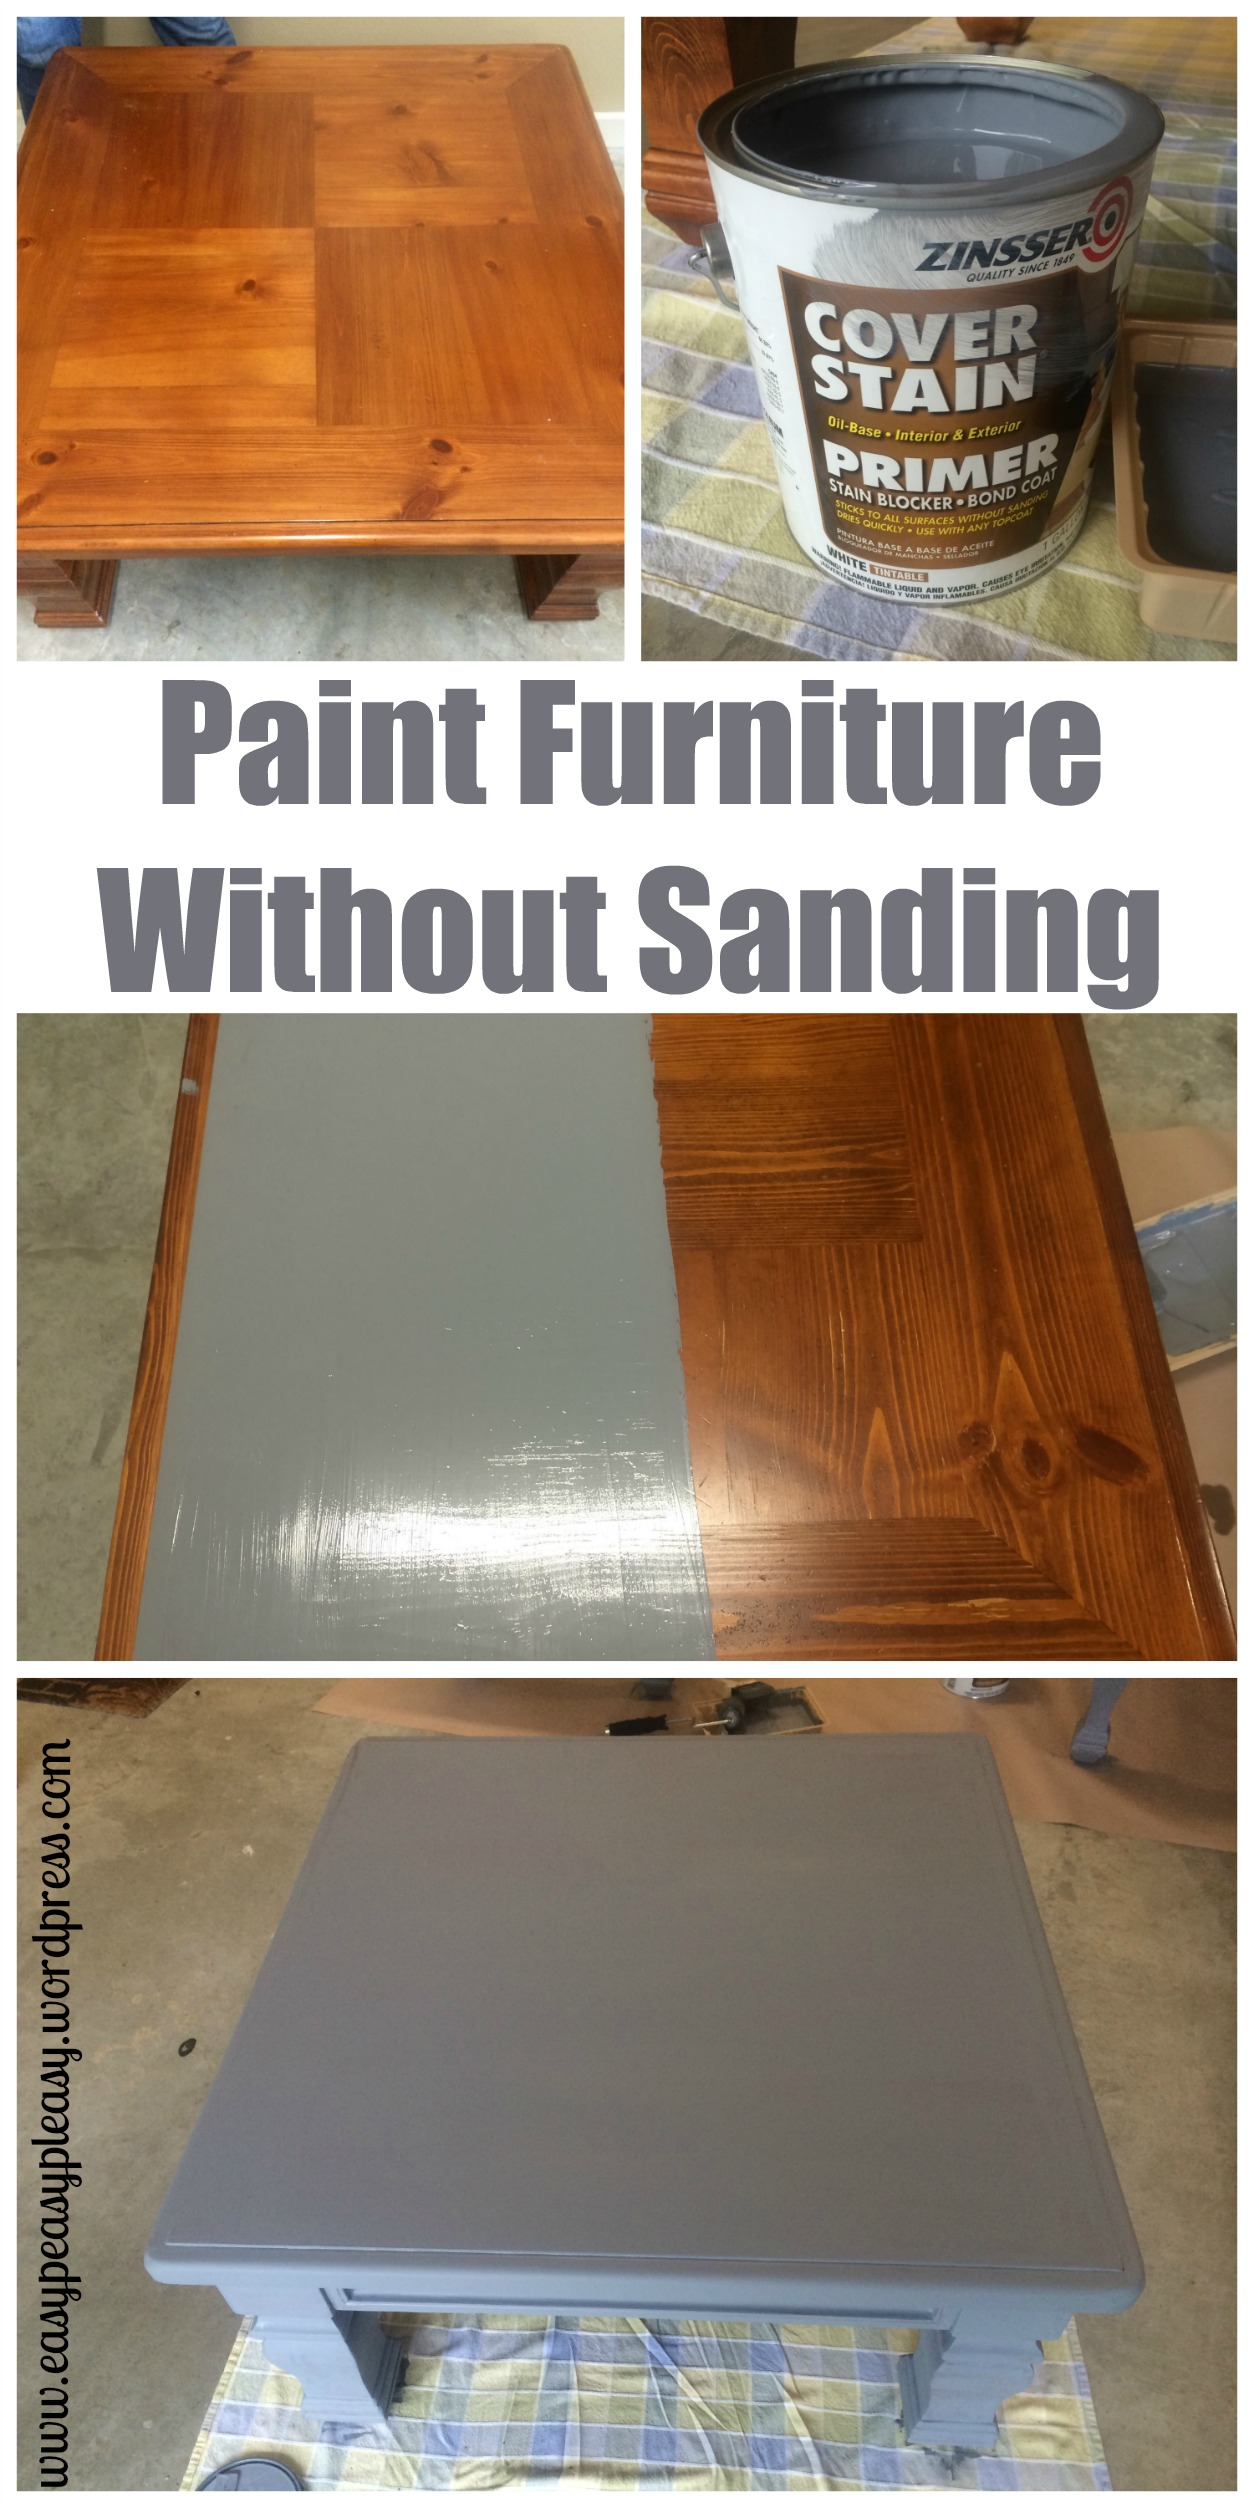 Do You Have To Use Primer Before Painting Furniture